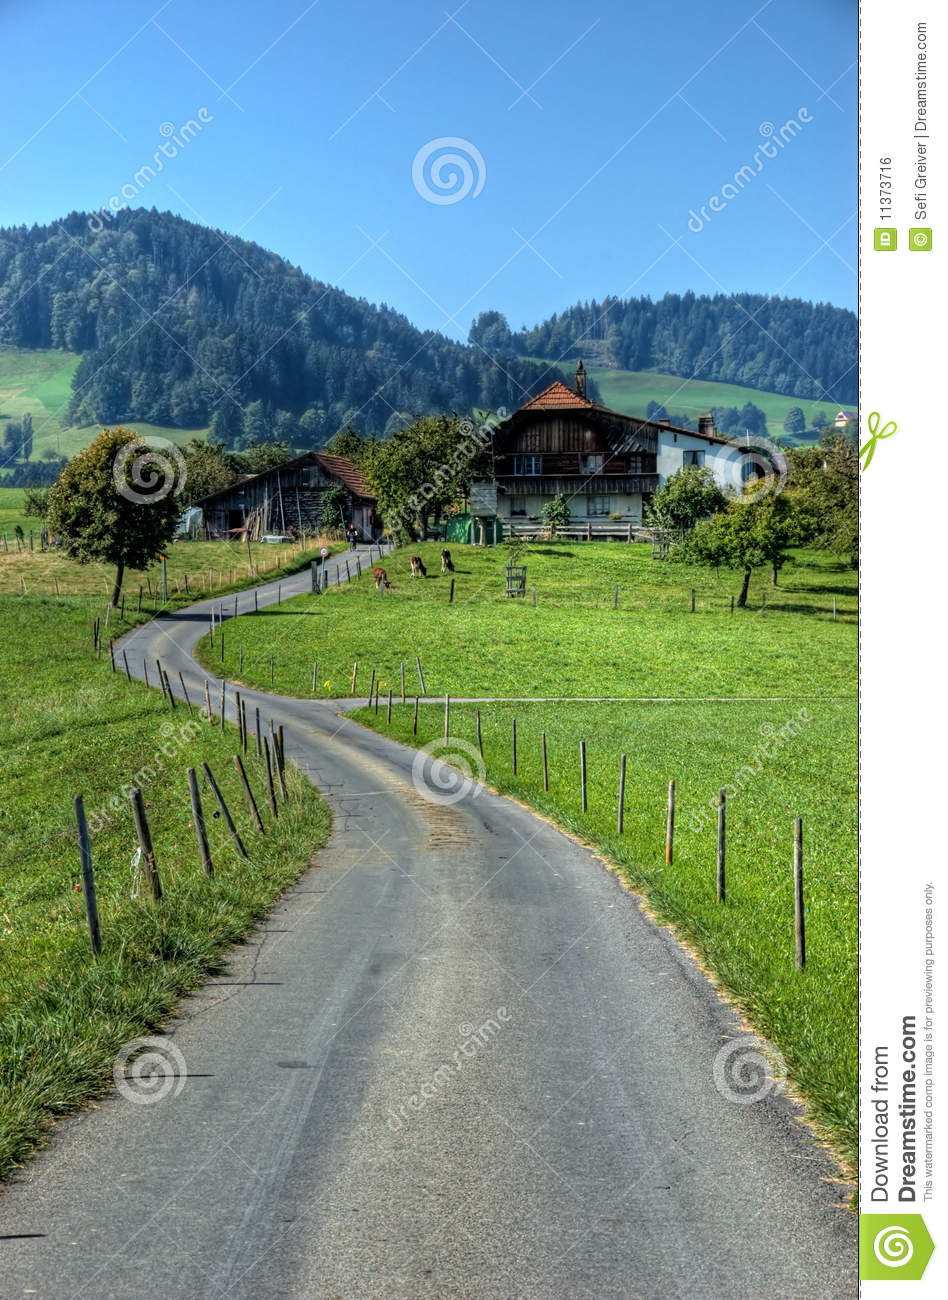 Home Time Road Roblox Id: Road Leading To A House Stock Photo. Image Of Cabin